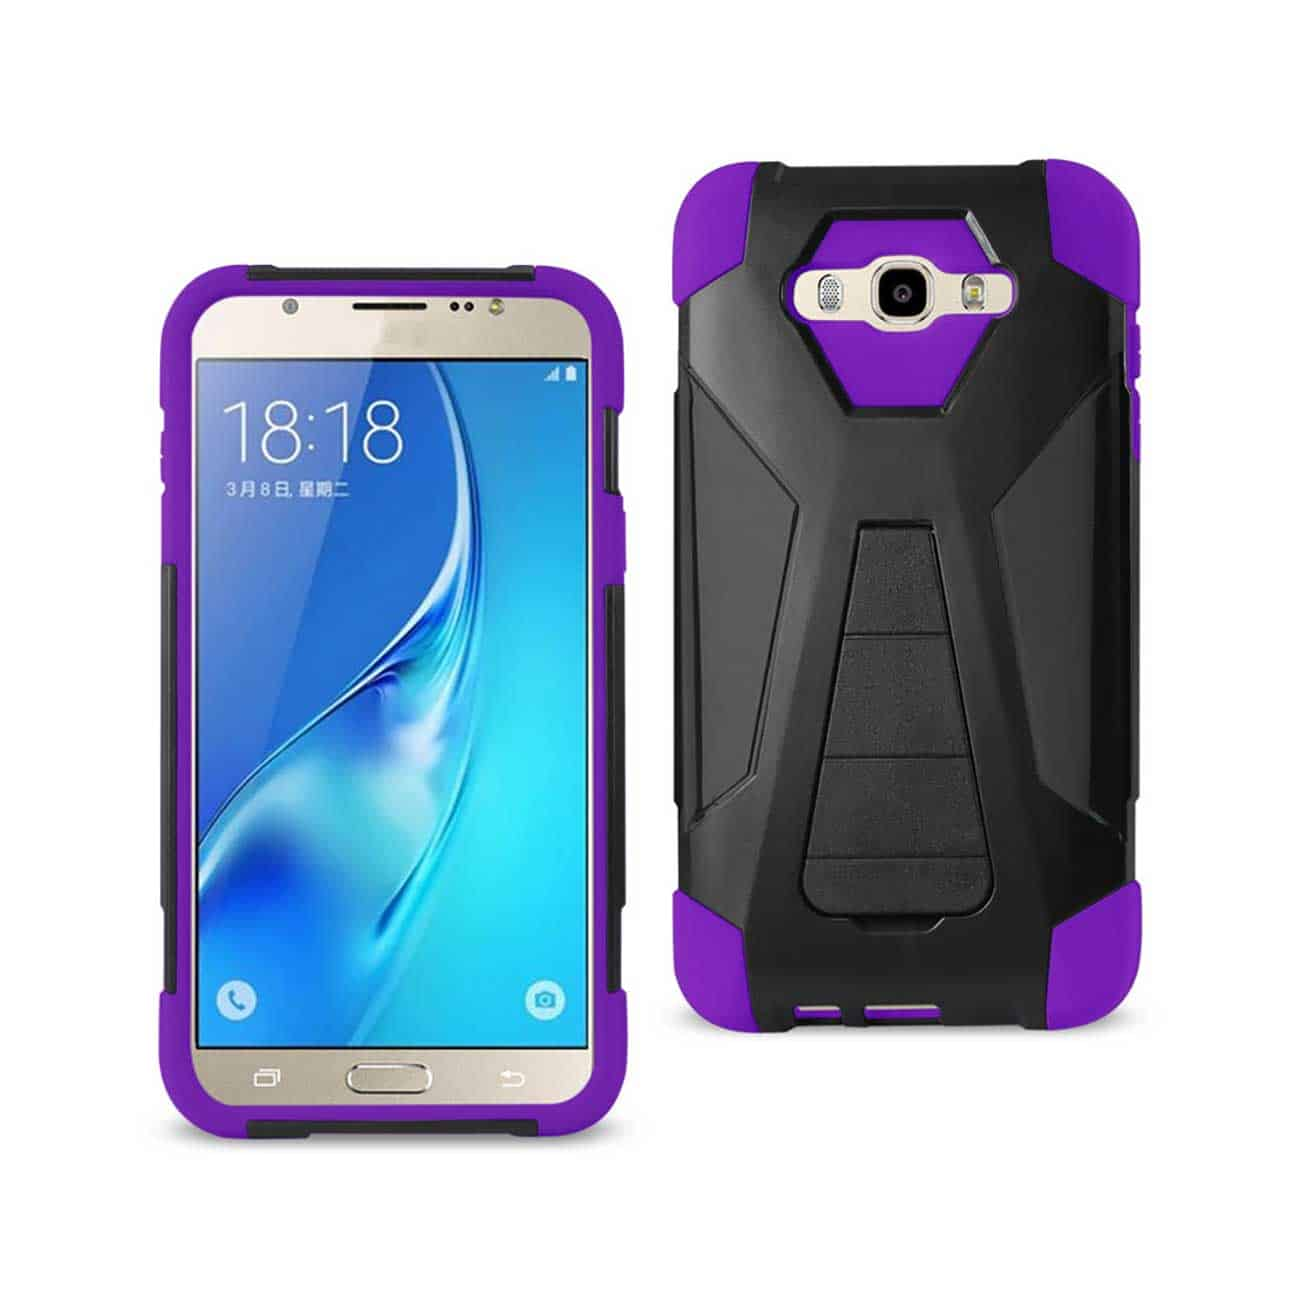 SAMSUNG GALAXY J7 (2016) HYBRID HEAVY DUTY CASE WITH KICKSTAND IN PURPLE BLACK